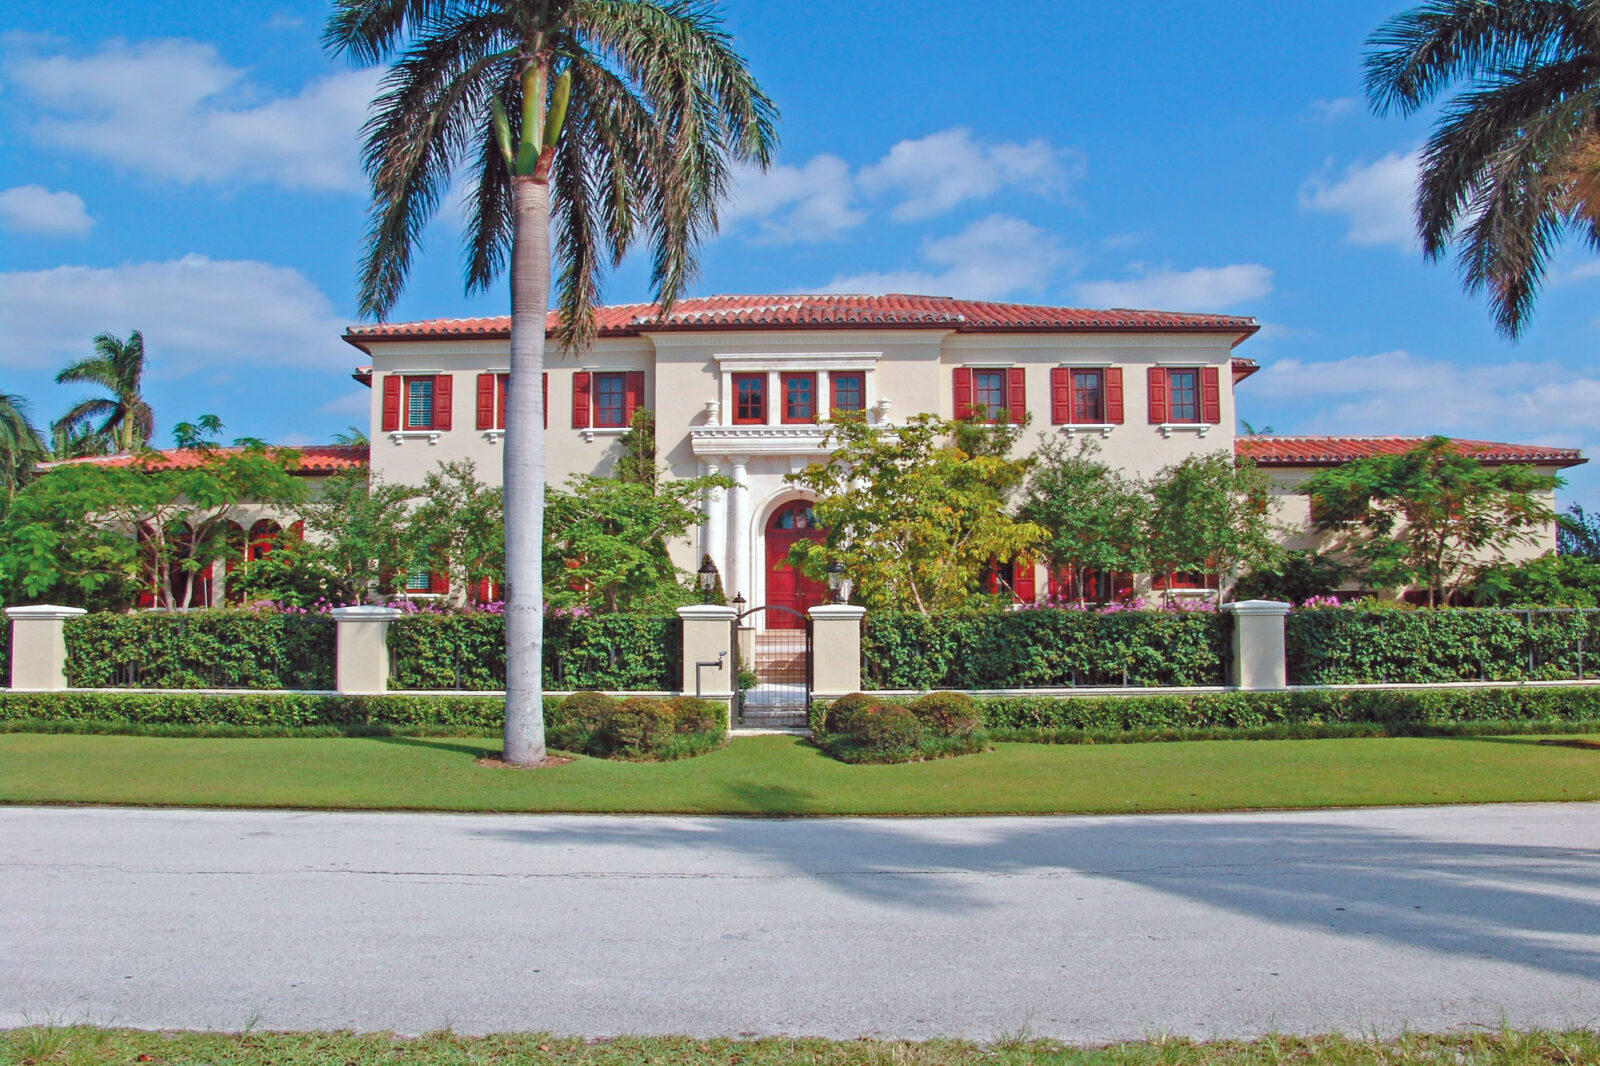 GABLES ESTATE RESIDENCE